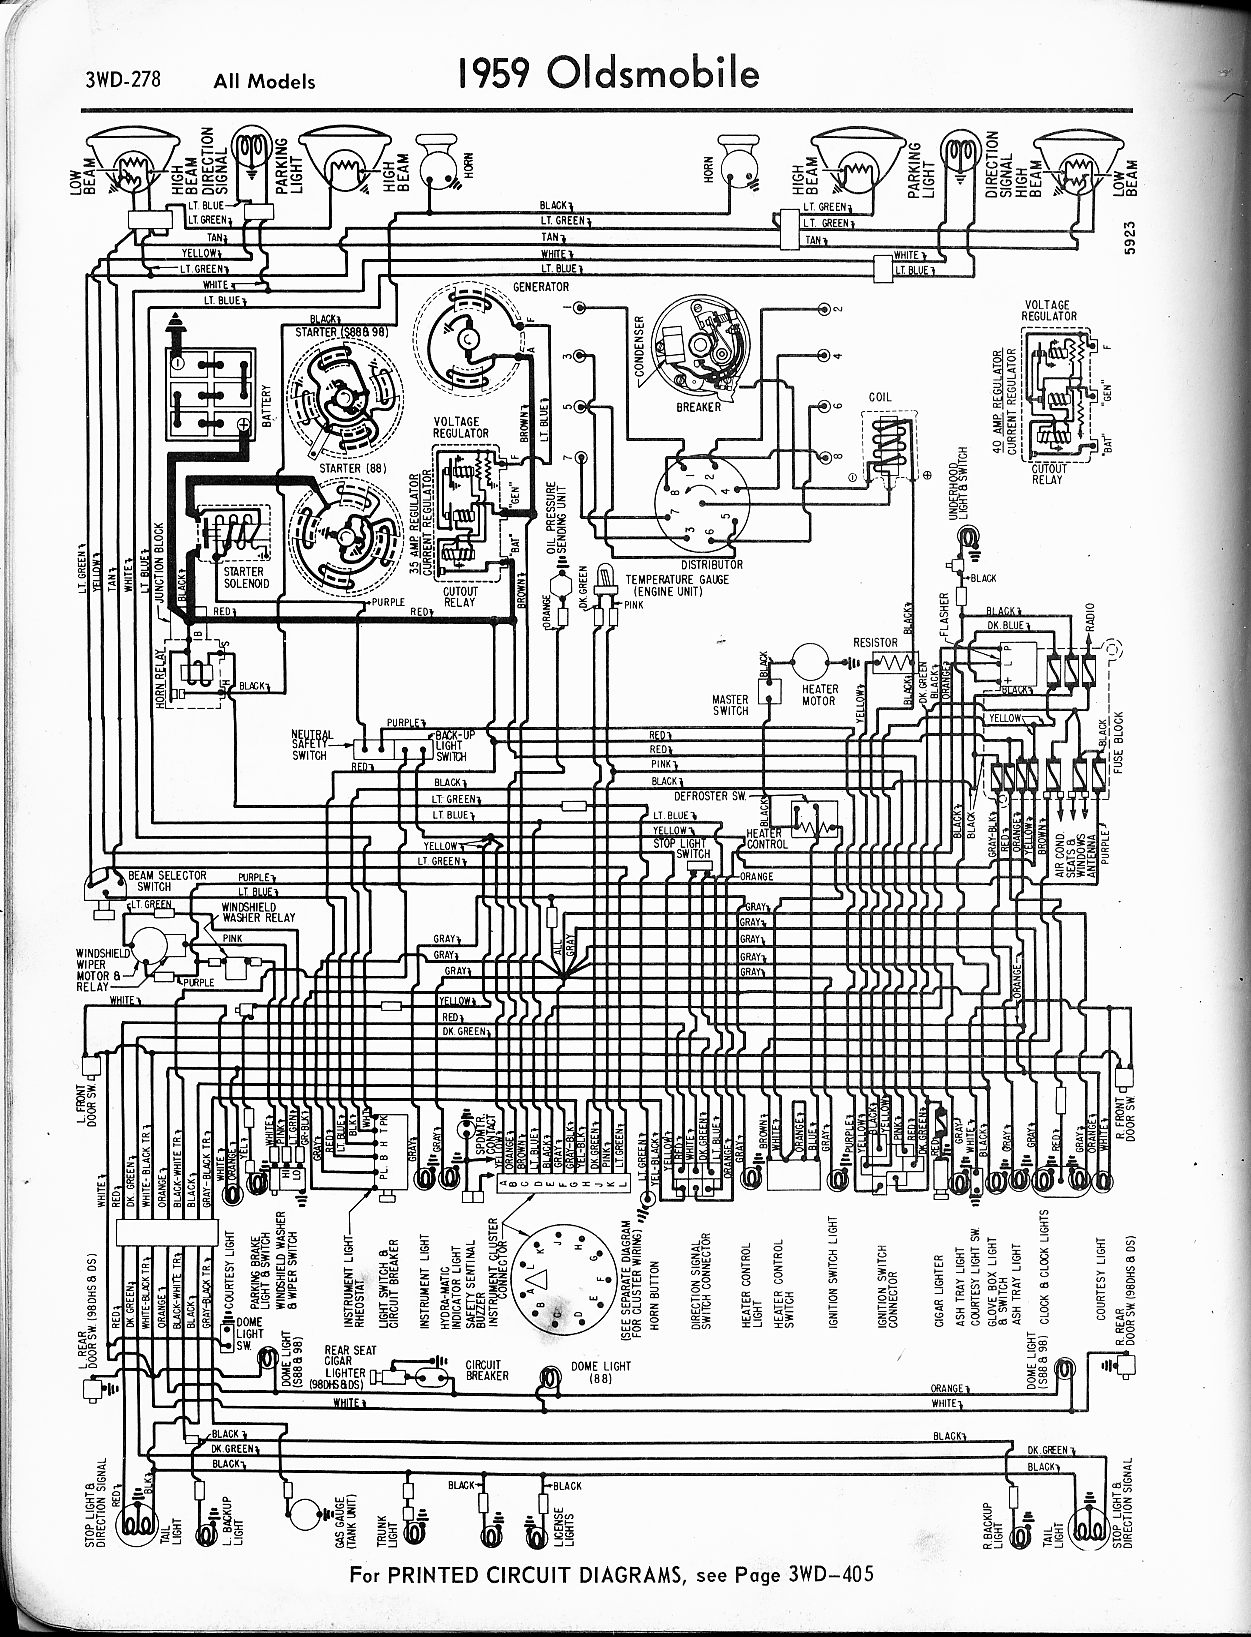 MWire5765 278 oldsmobile wiring diagrams the old car manual project  at edmiracle.co